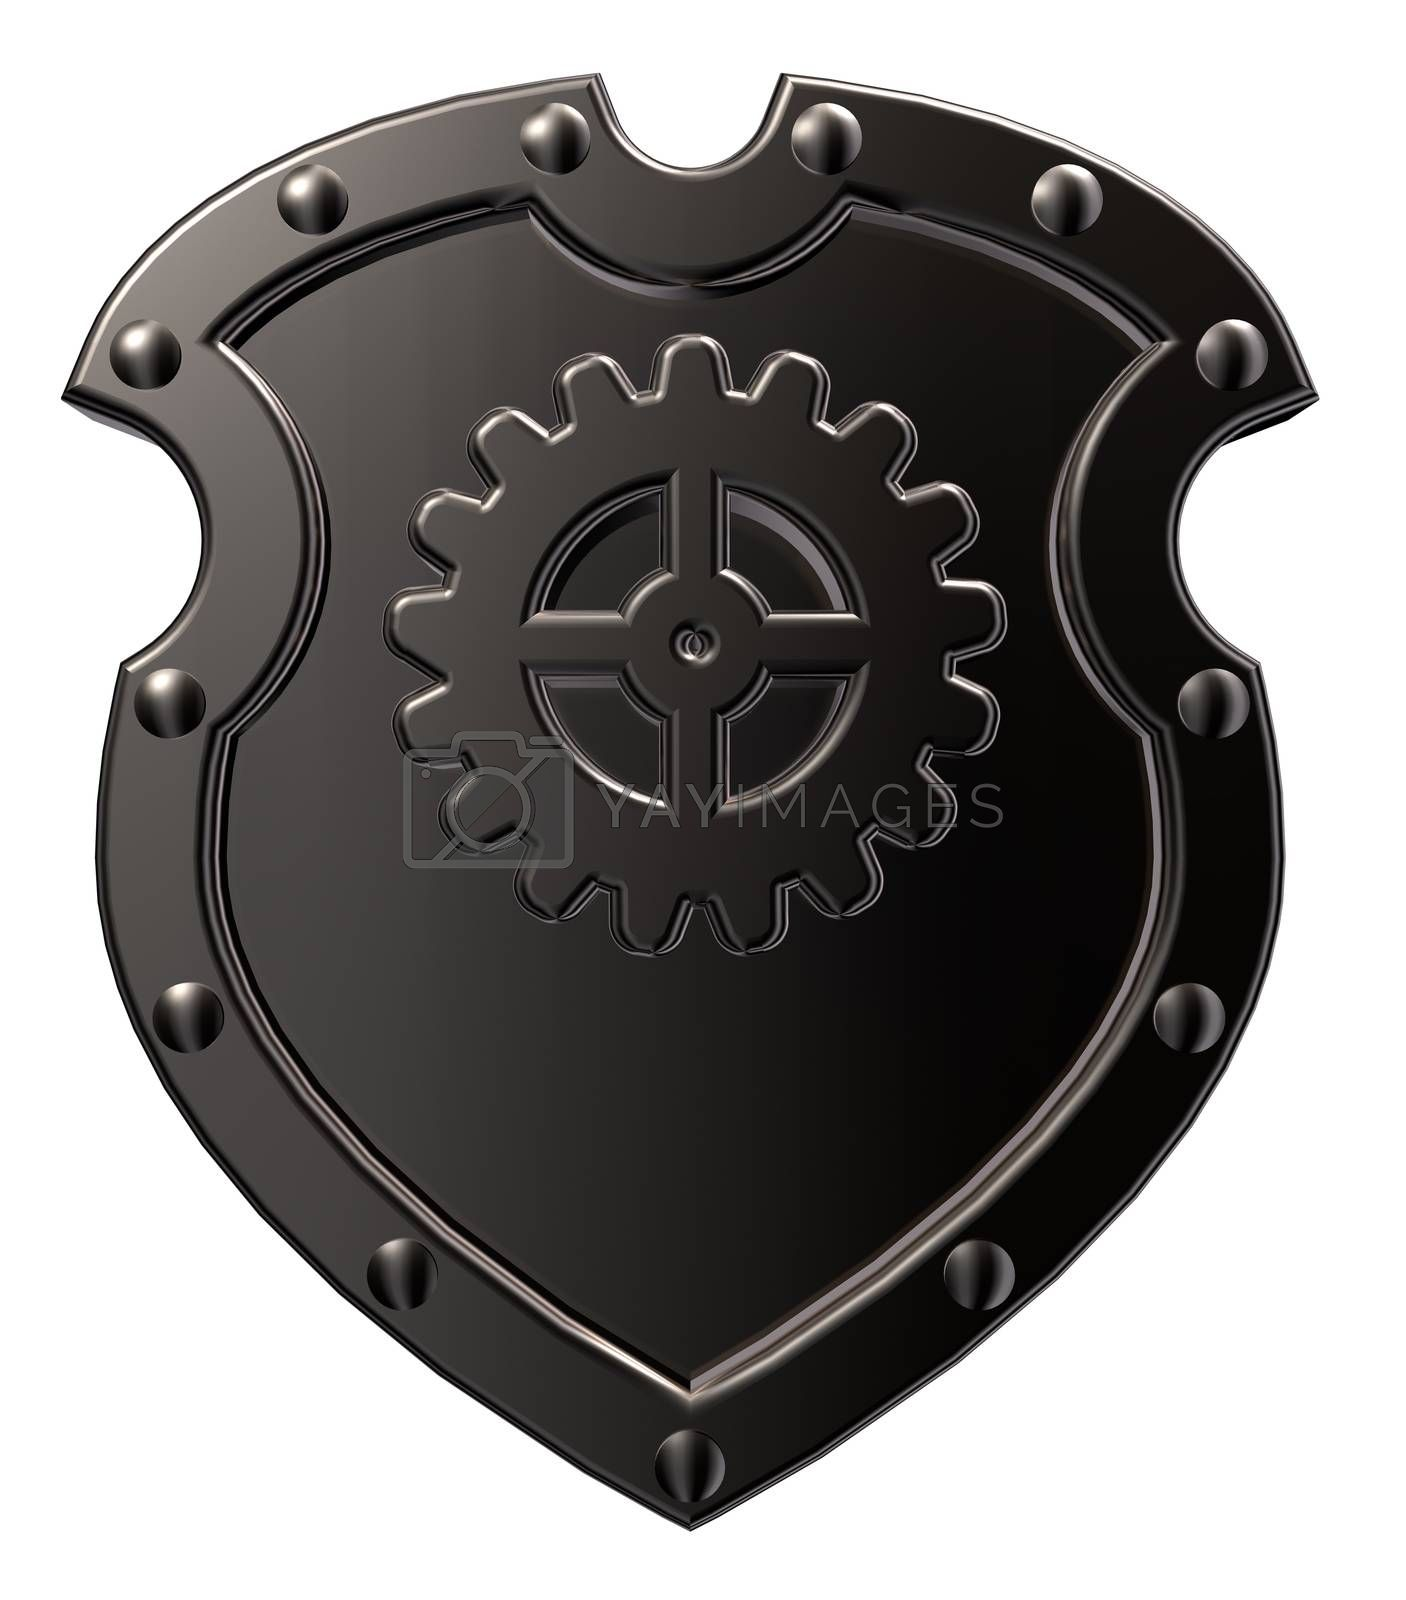 riveted metal shield with gear wheel symbol on white background - 3d illustration